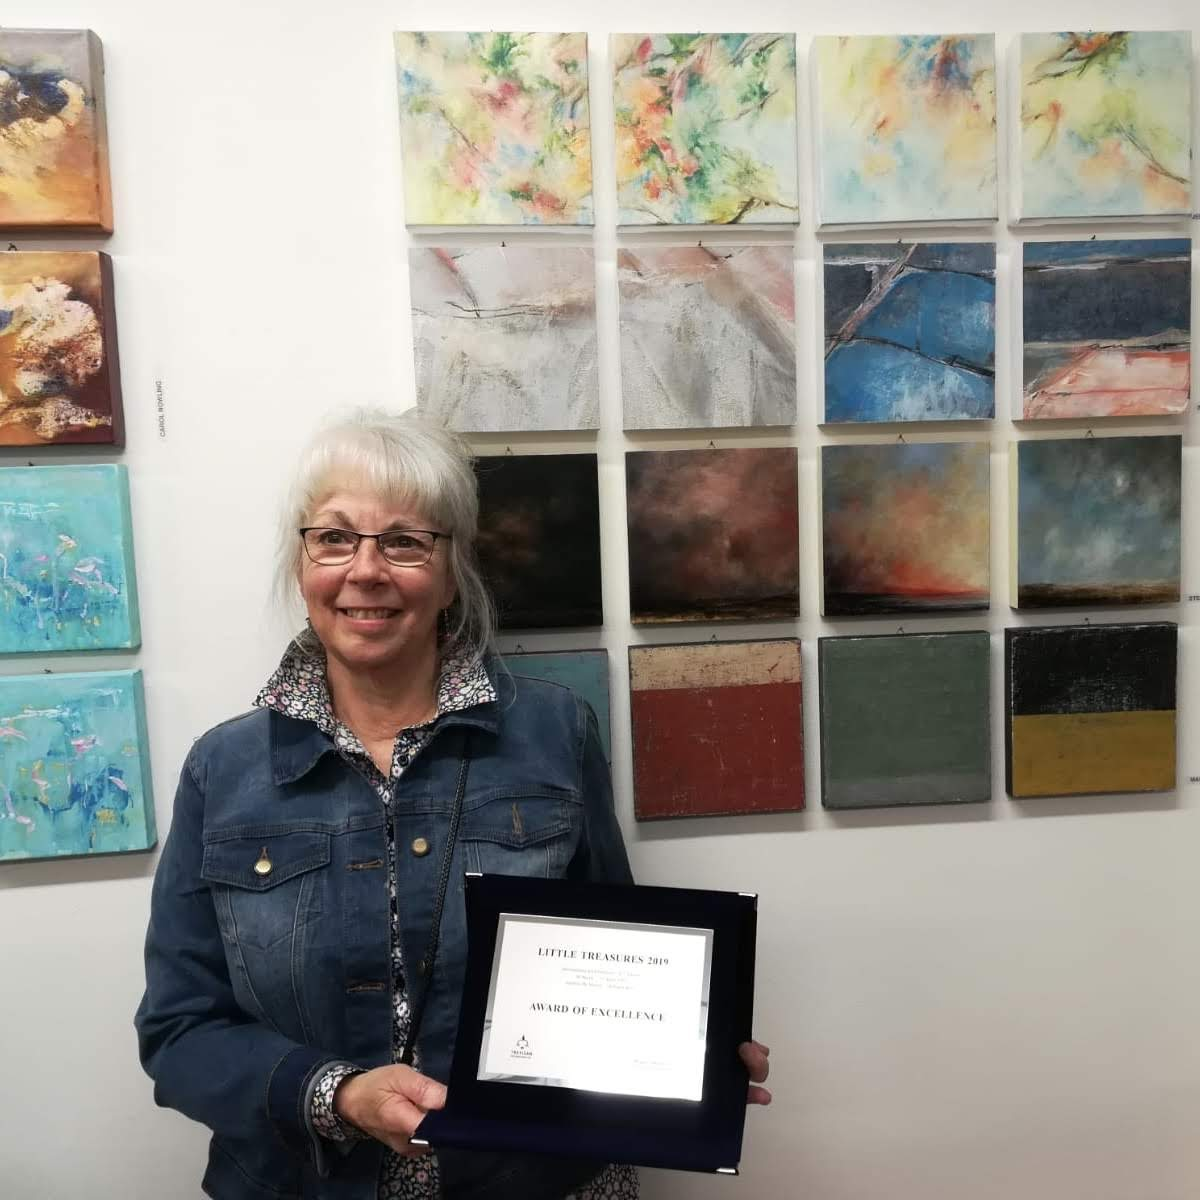 Excellence Award given to  Over the Pond Suite  , Invited Little Treasures Exhibition in Bologna, March 2019